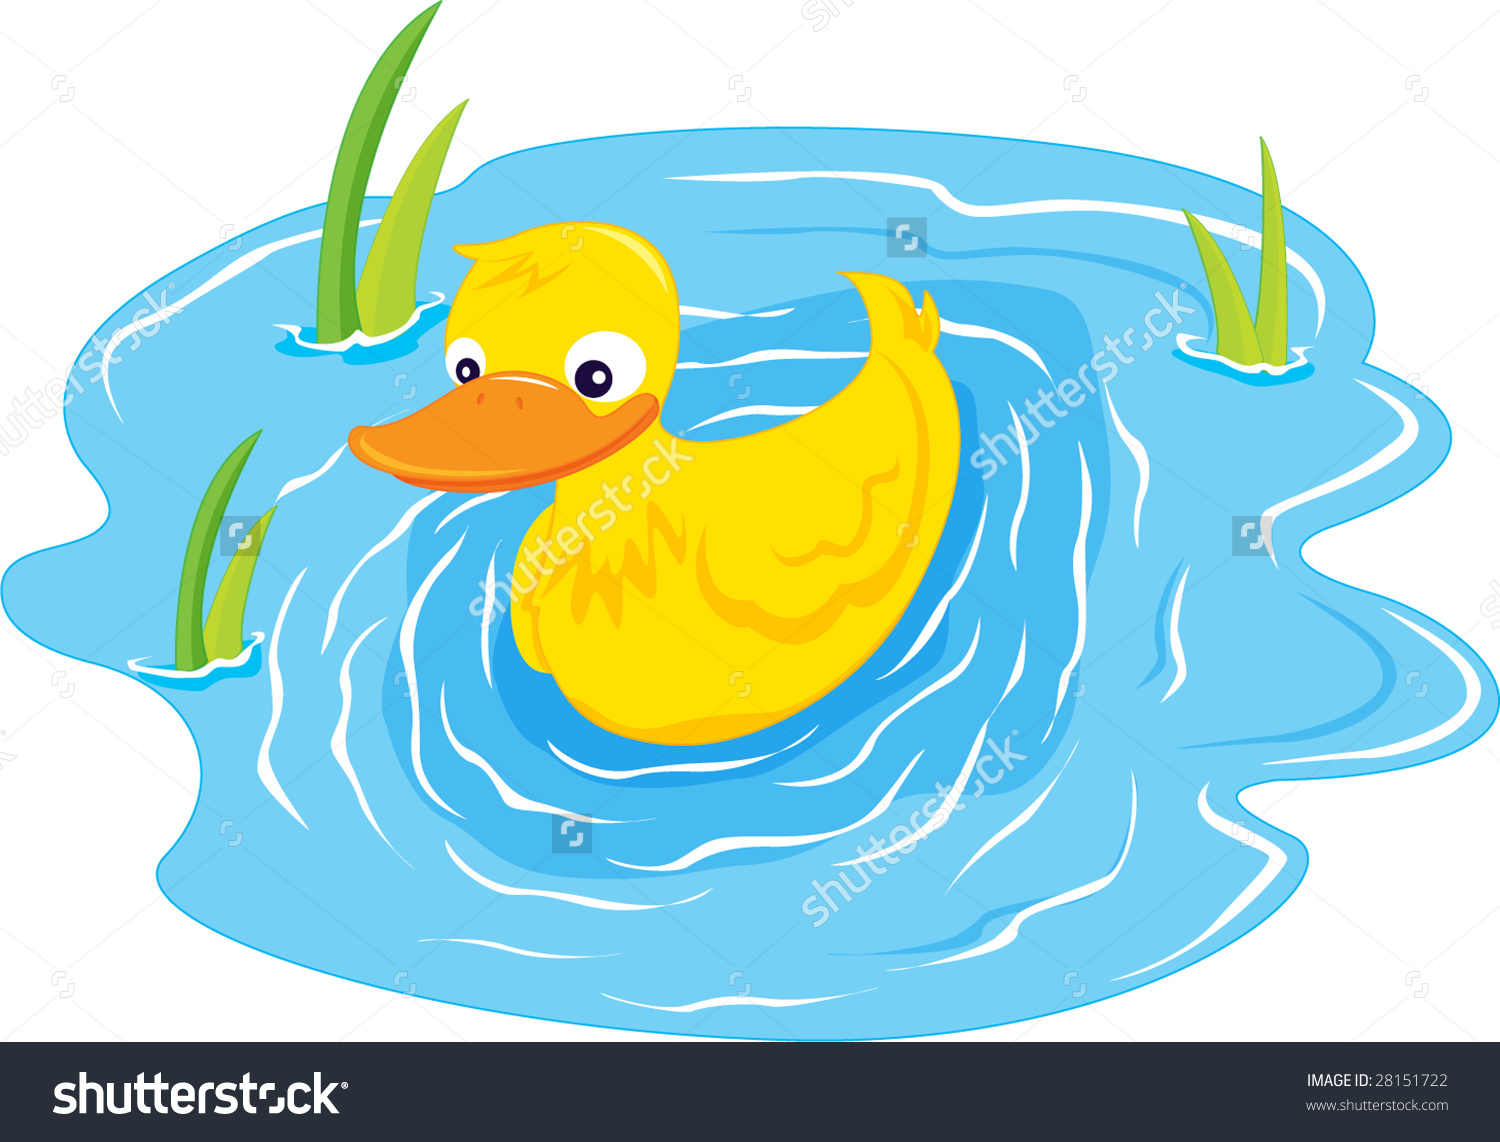 Game clipart duck pond #4